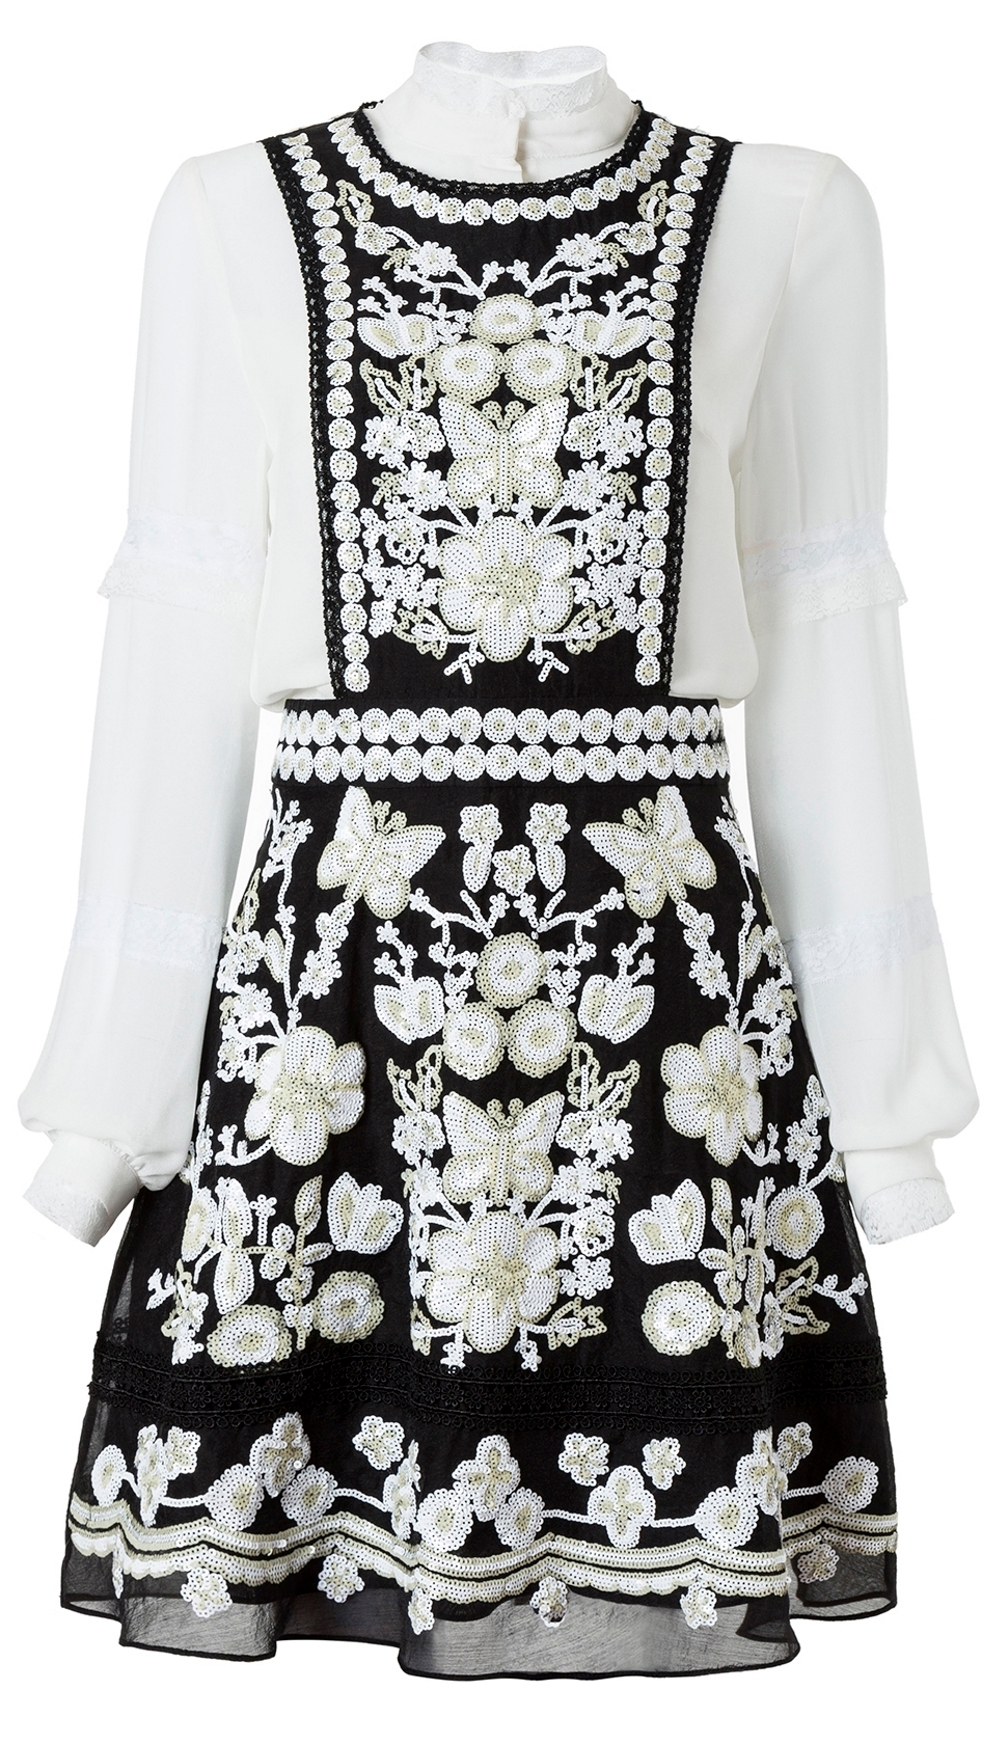 COMINO COUTURE BUTTERFLY PINAFORE DRESS